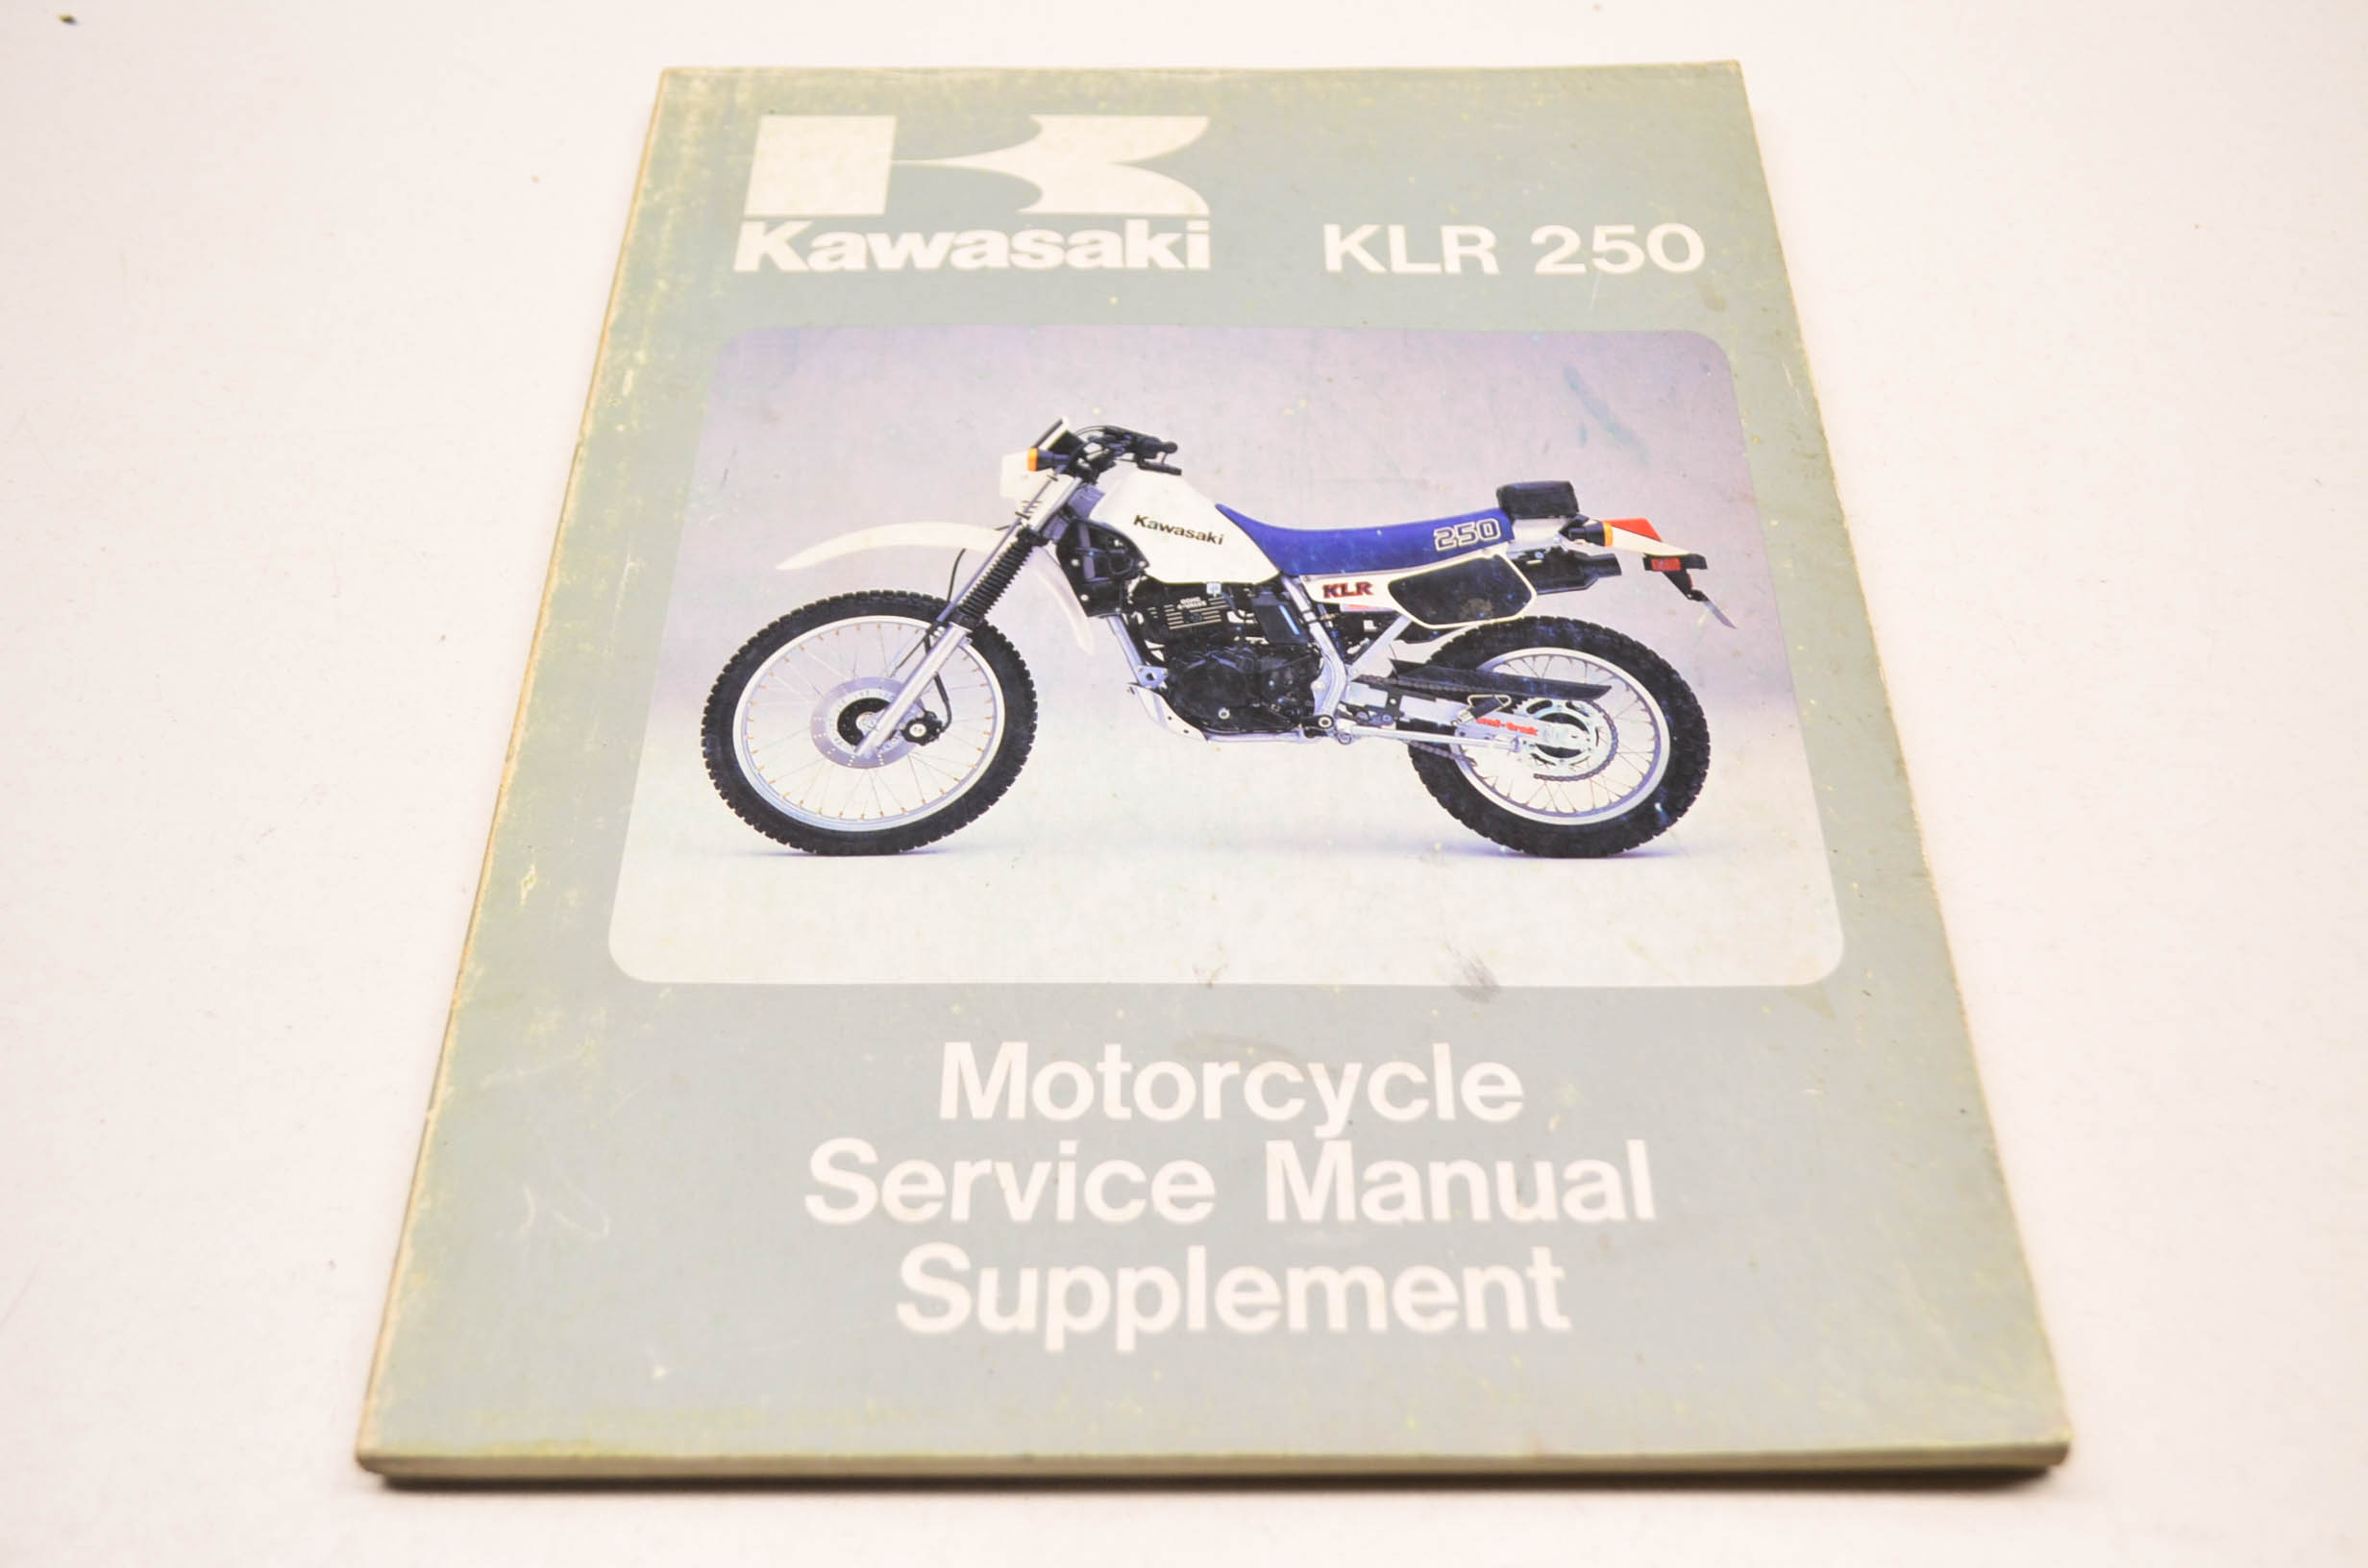 Kawasaki 99924-1051-01 85 KLR250 Service Manual Supplement QTY 1 -  Walmart.com